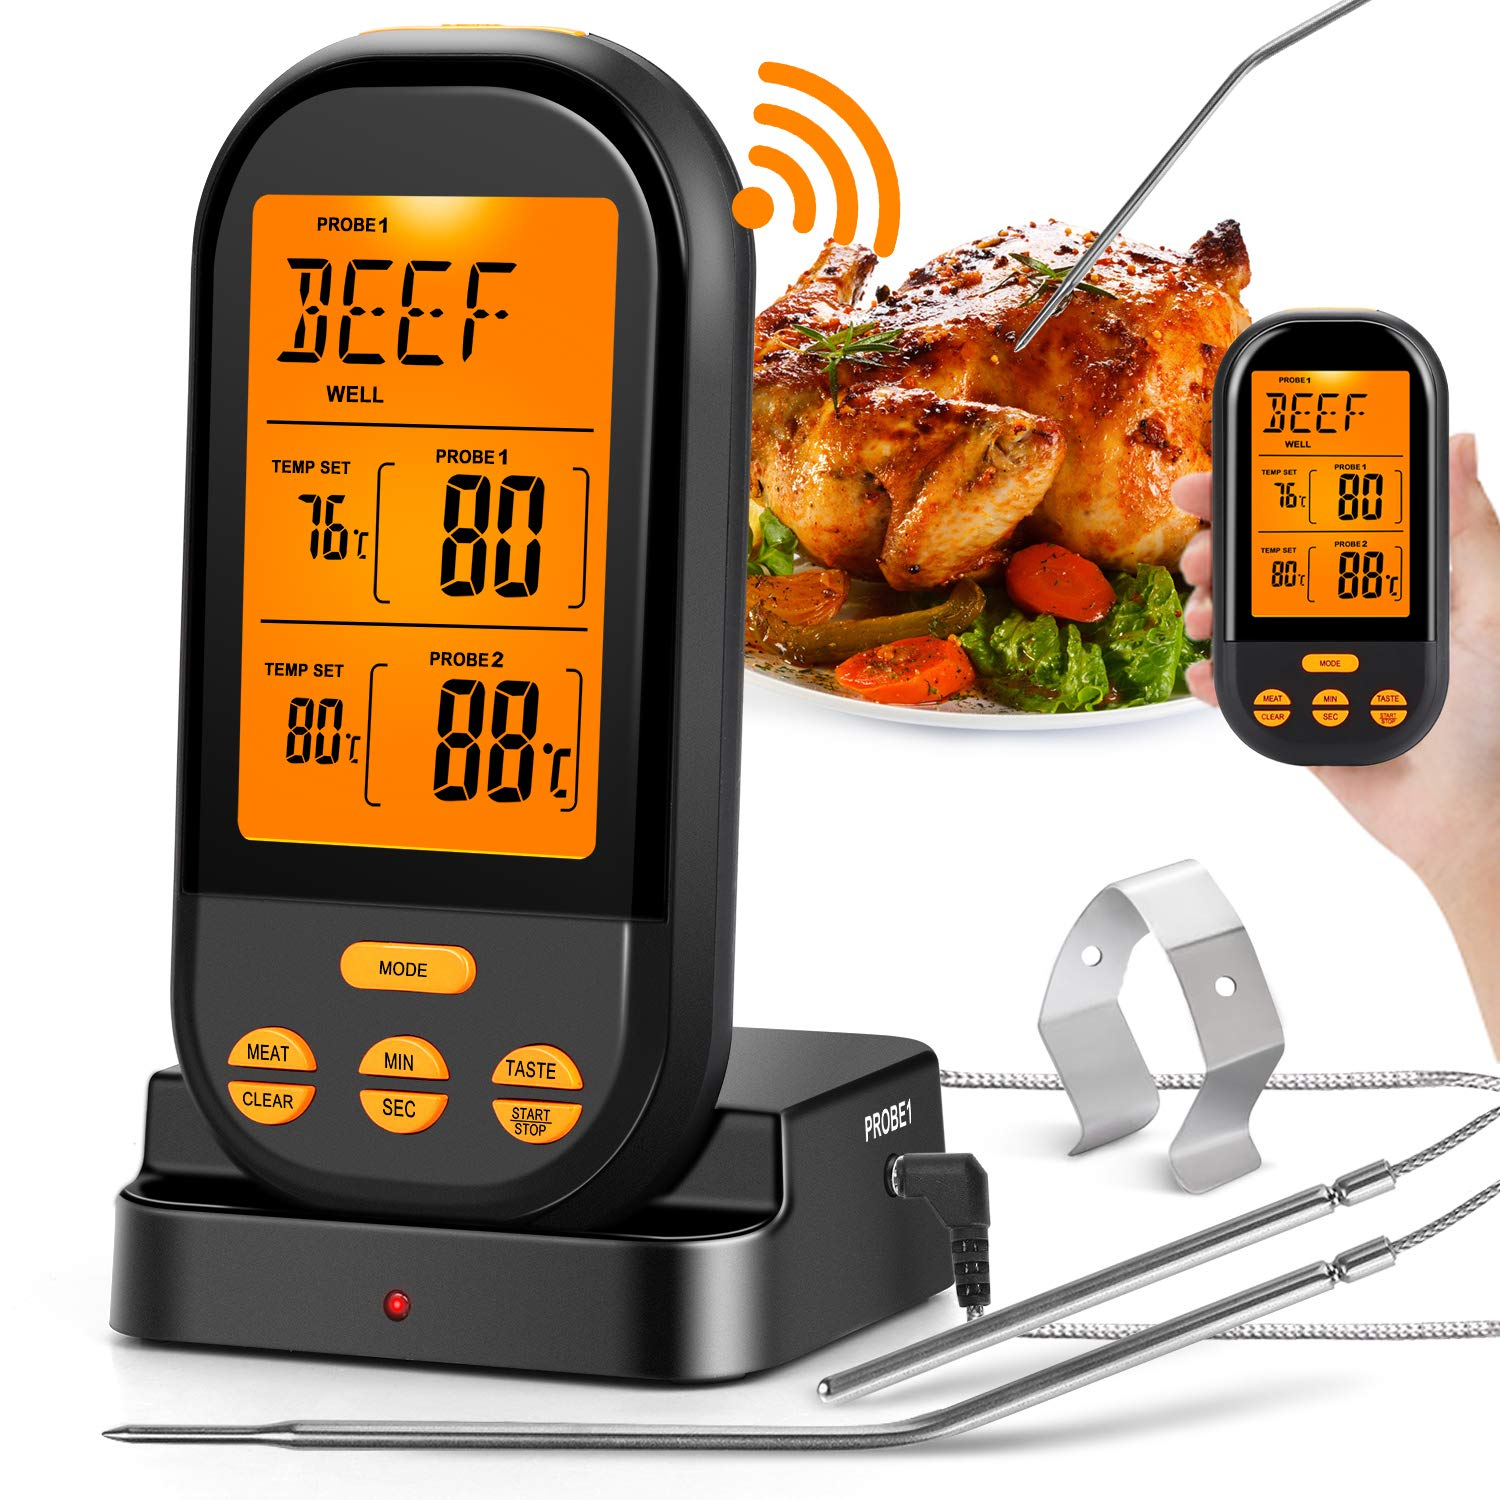 MZTDYTL Wireless Meat Thermometer for Grilling,Instant Read Digital Cooking Thermometer, with Dual Probes,Timer, Alarm,328FT Range Kitchen Food Thermometer for for Smoker Grill Oven BBQ